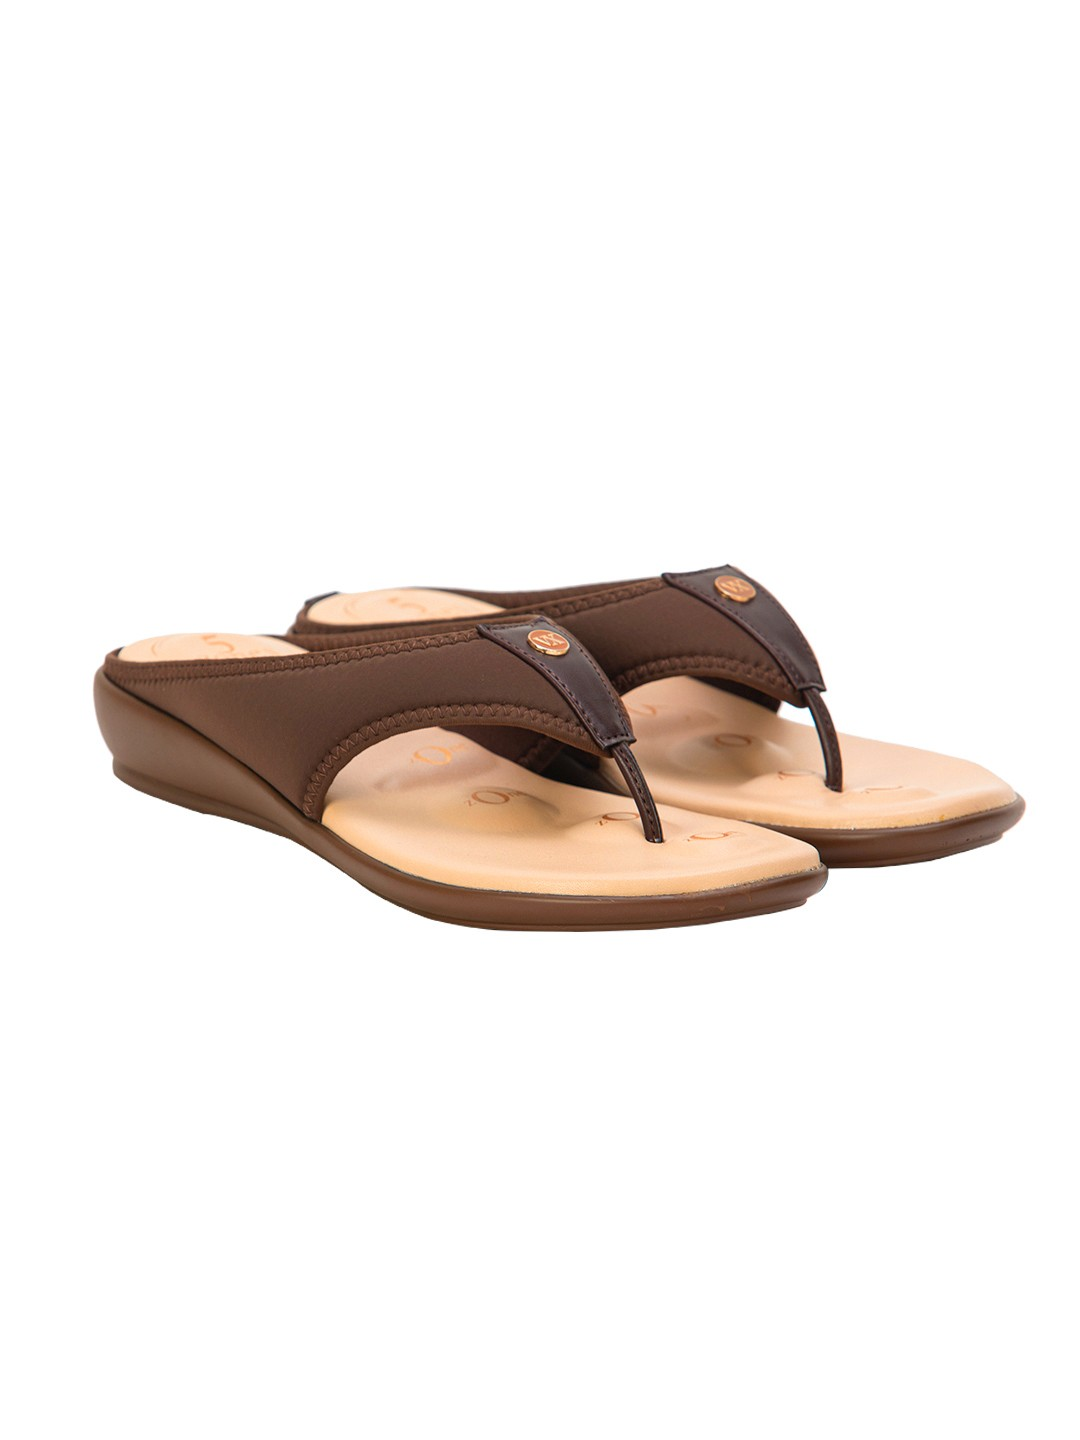 Buy VON WELLX JOANNA COMFORT BROWN SLIPPERS In Delhi